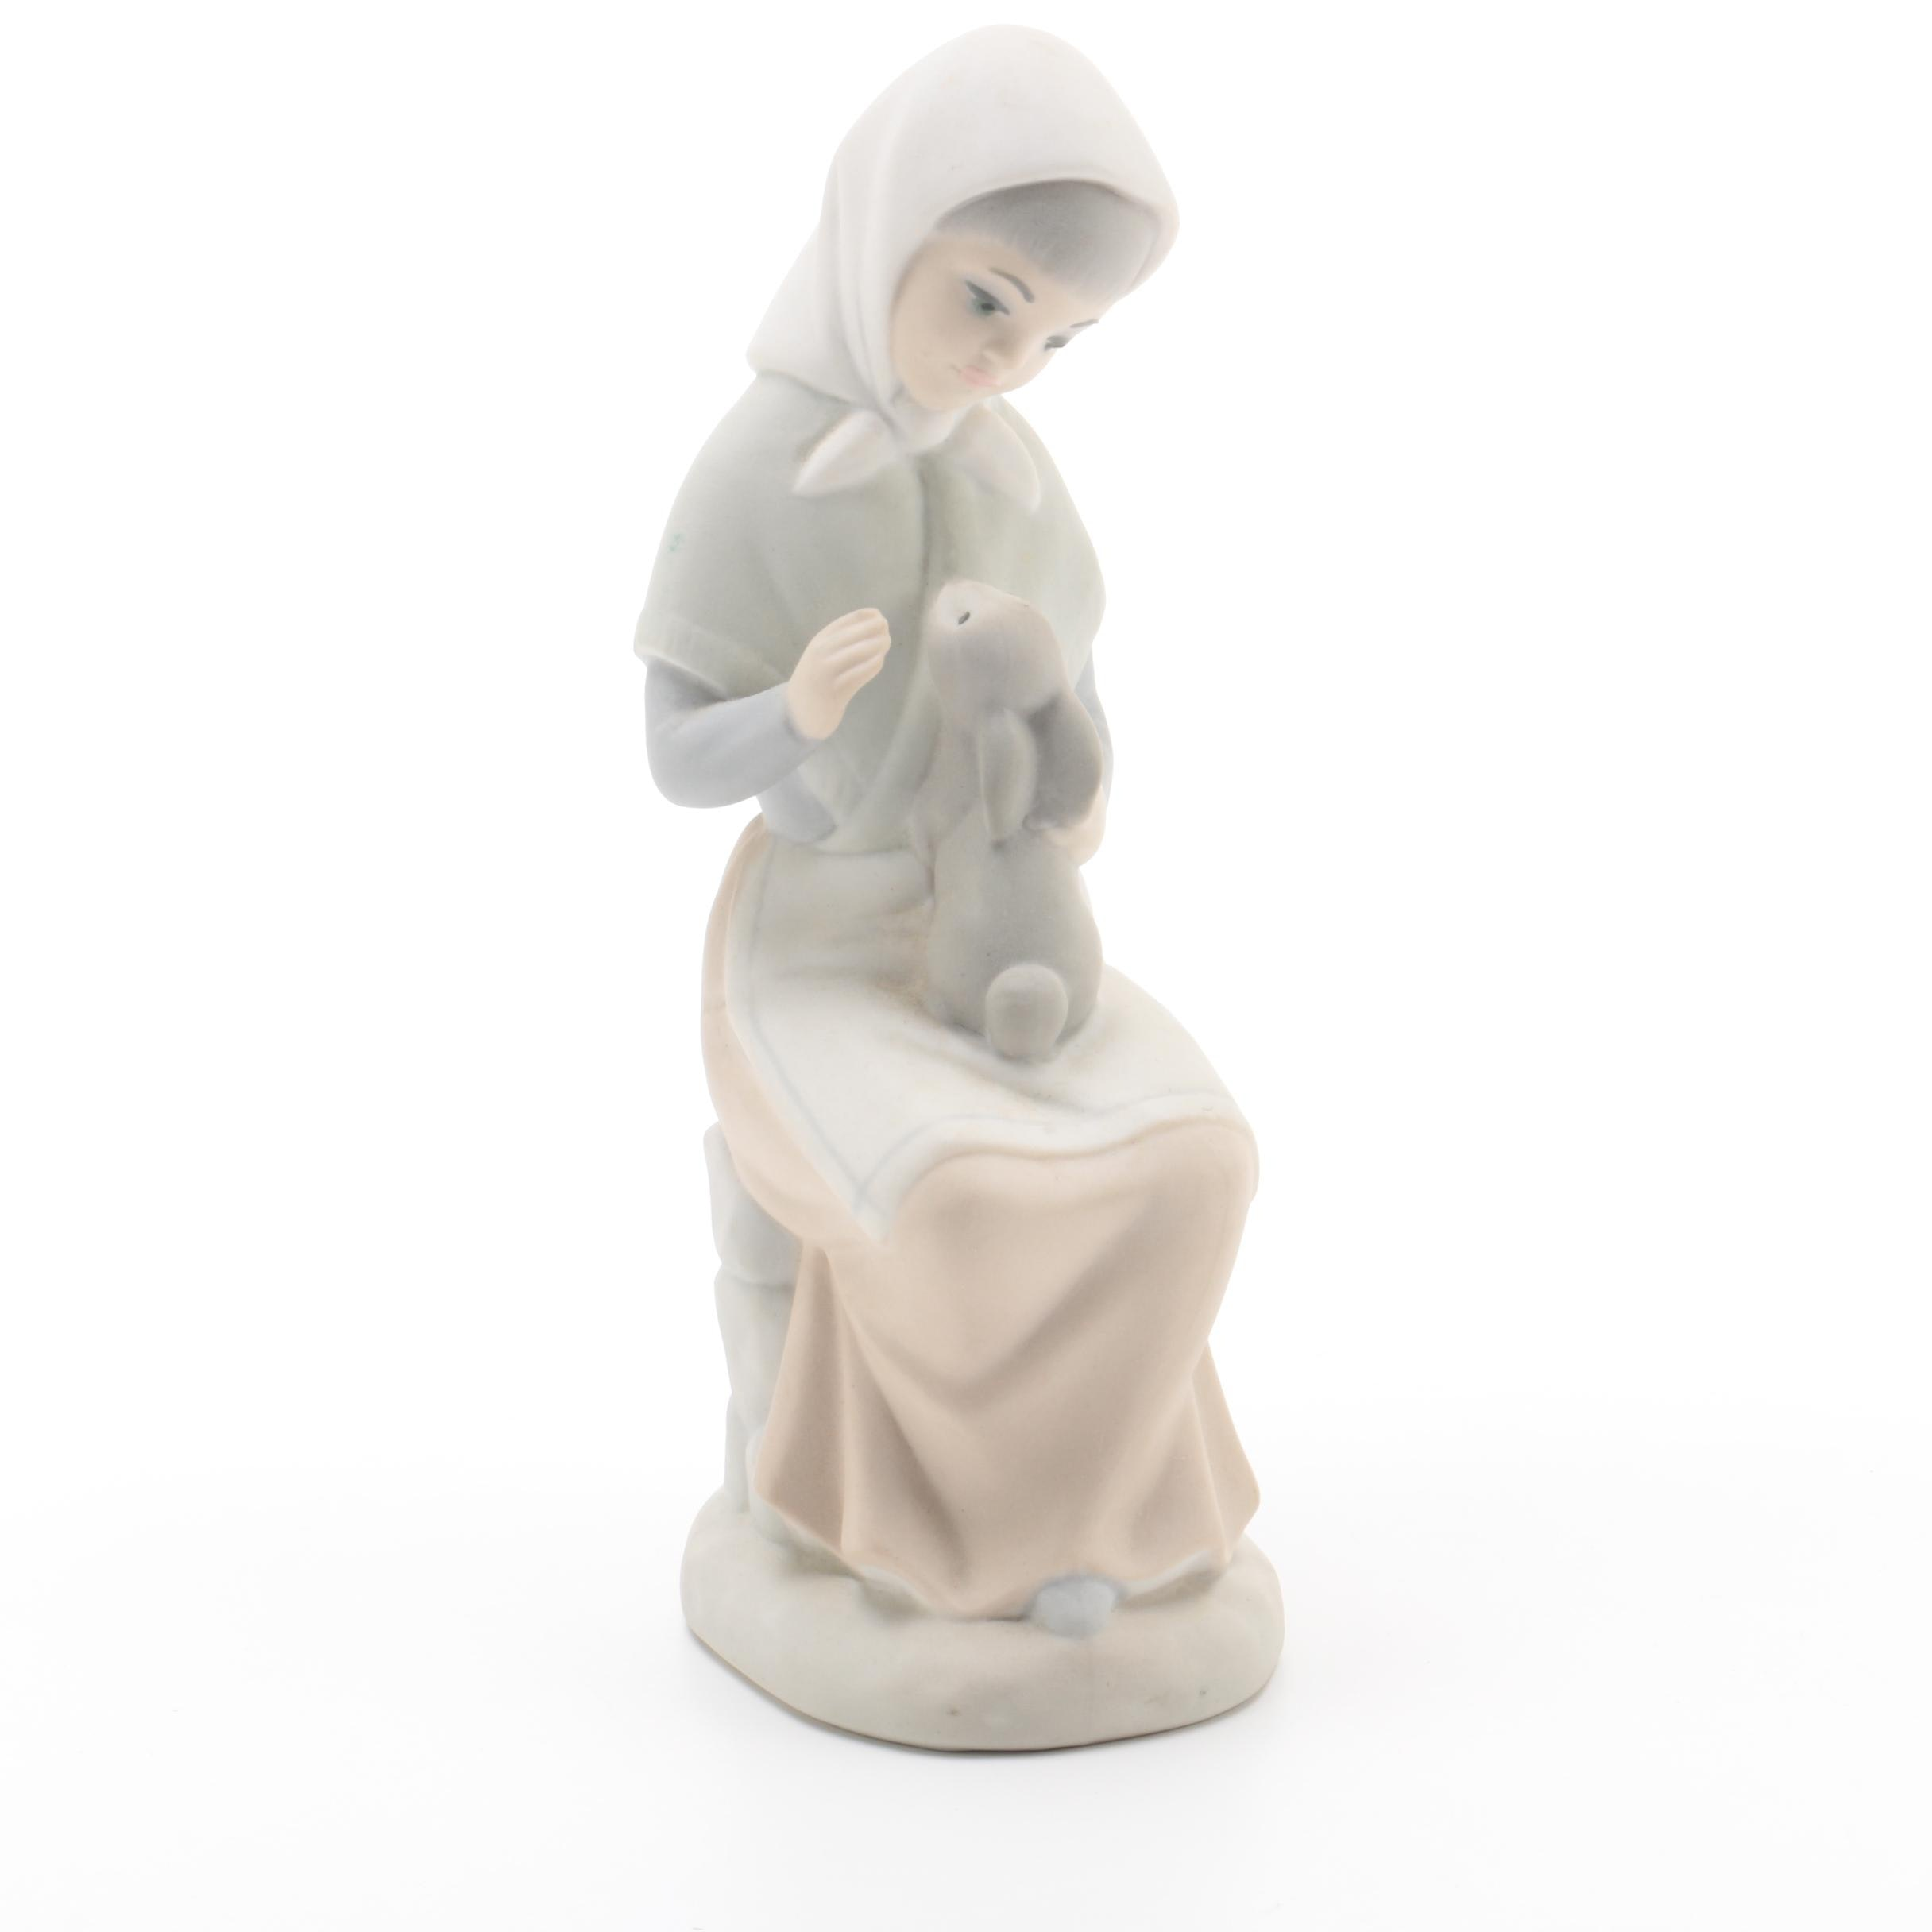 Zaphir Spanish Porcelain Figurine of Seated Girl with Rabbit